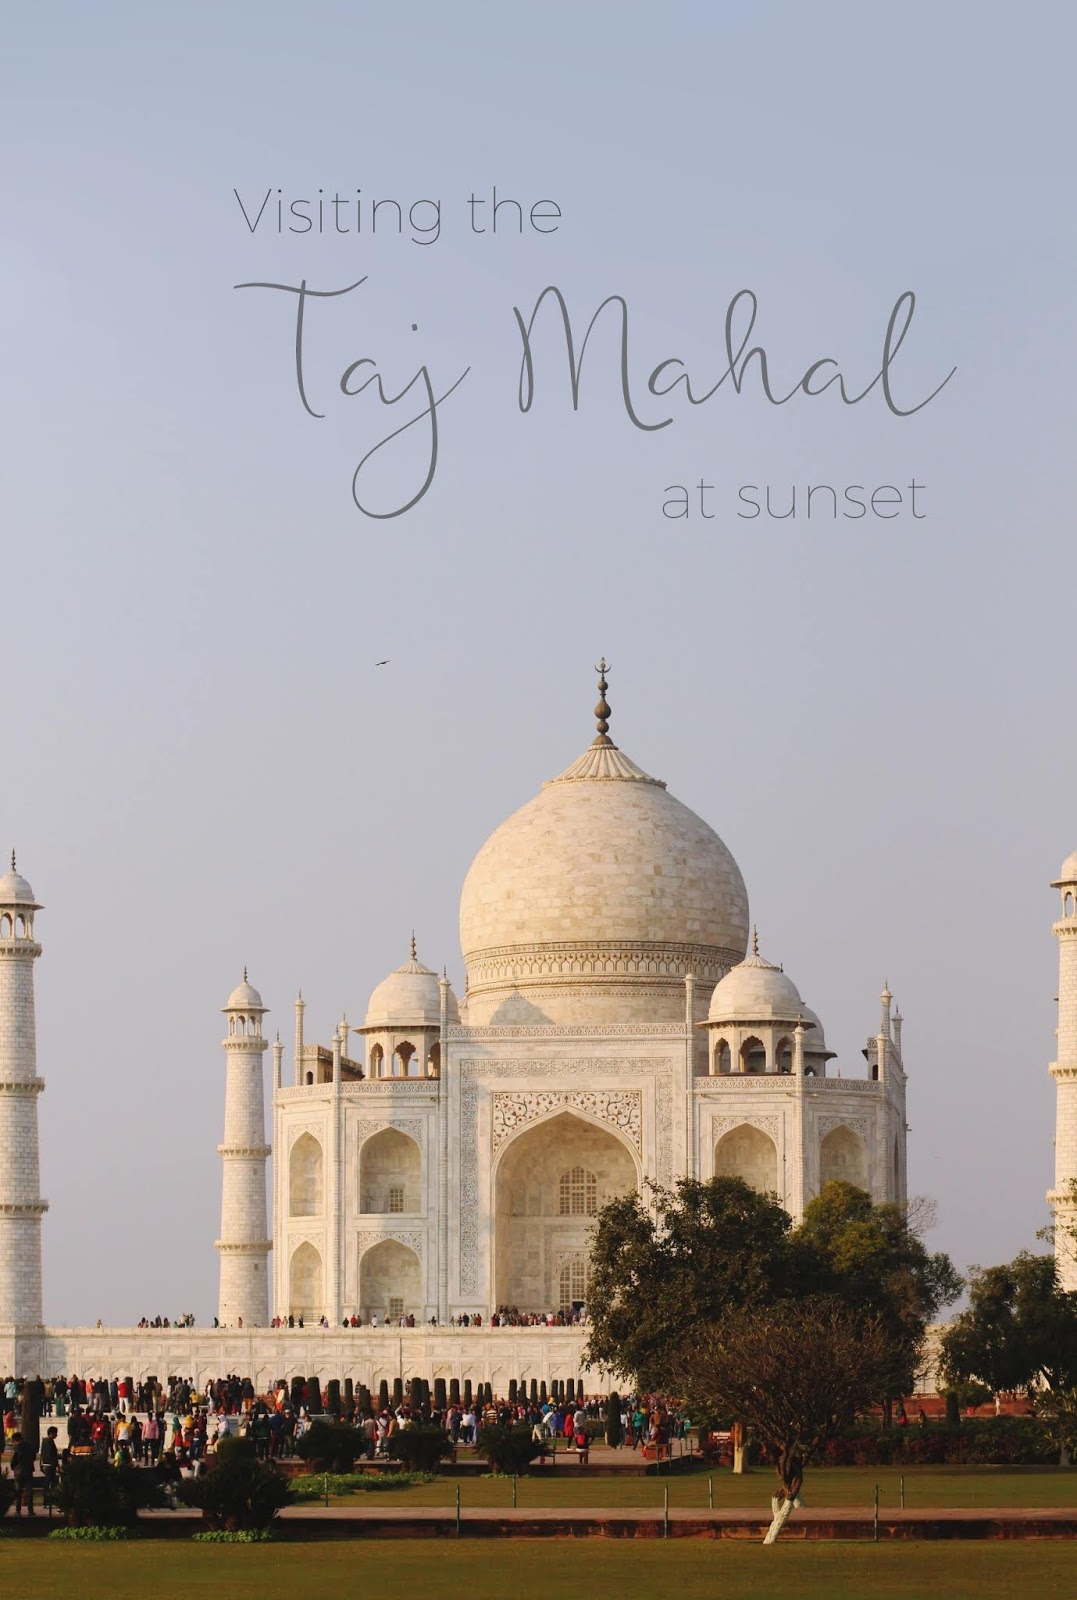 Visiting the Taj Mahal at sunset